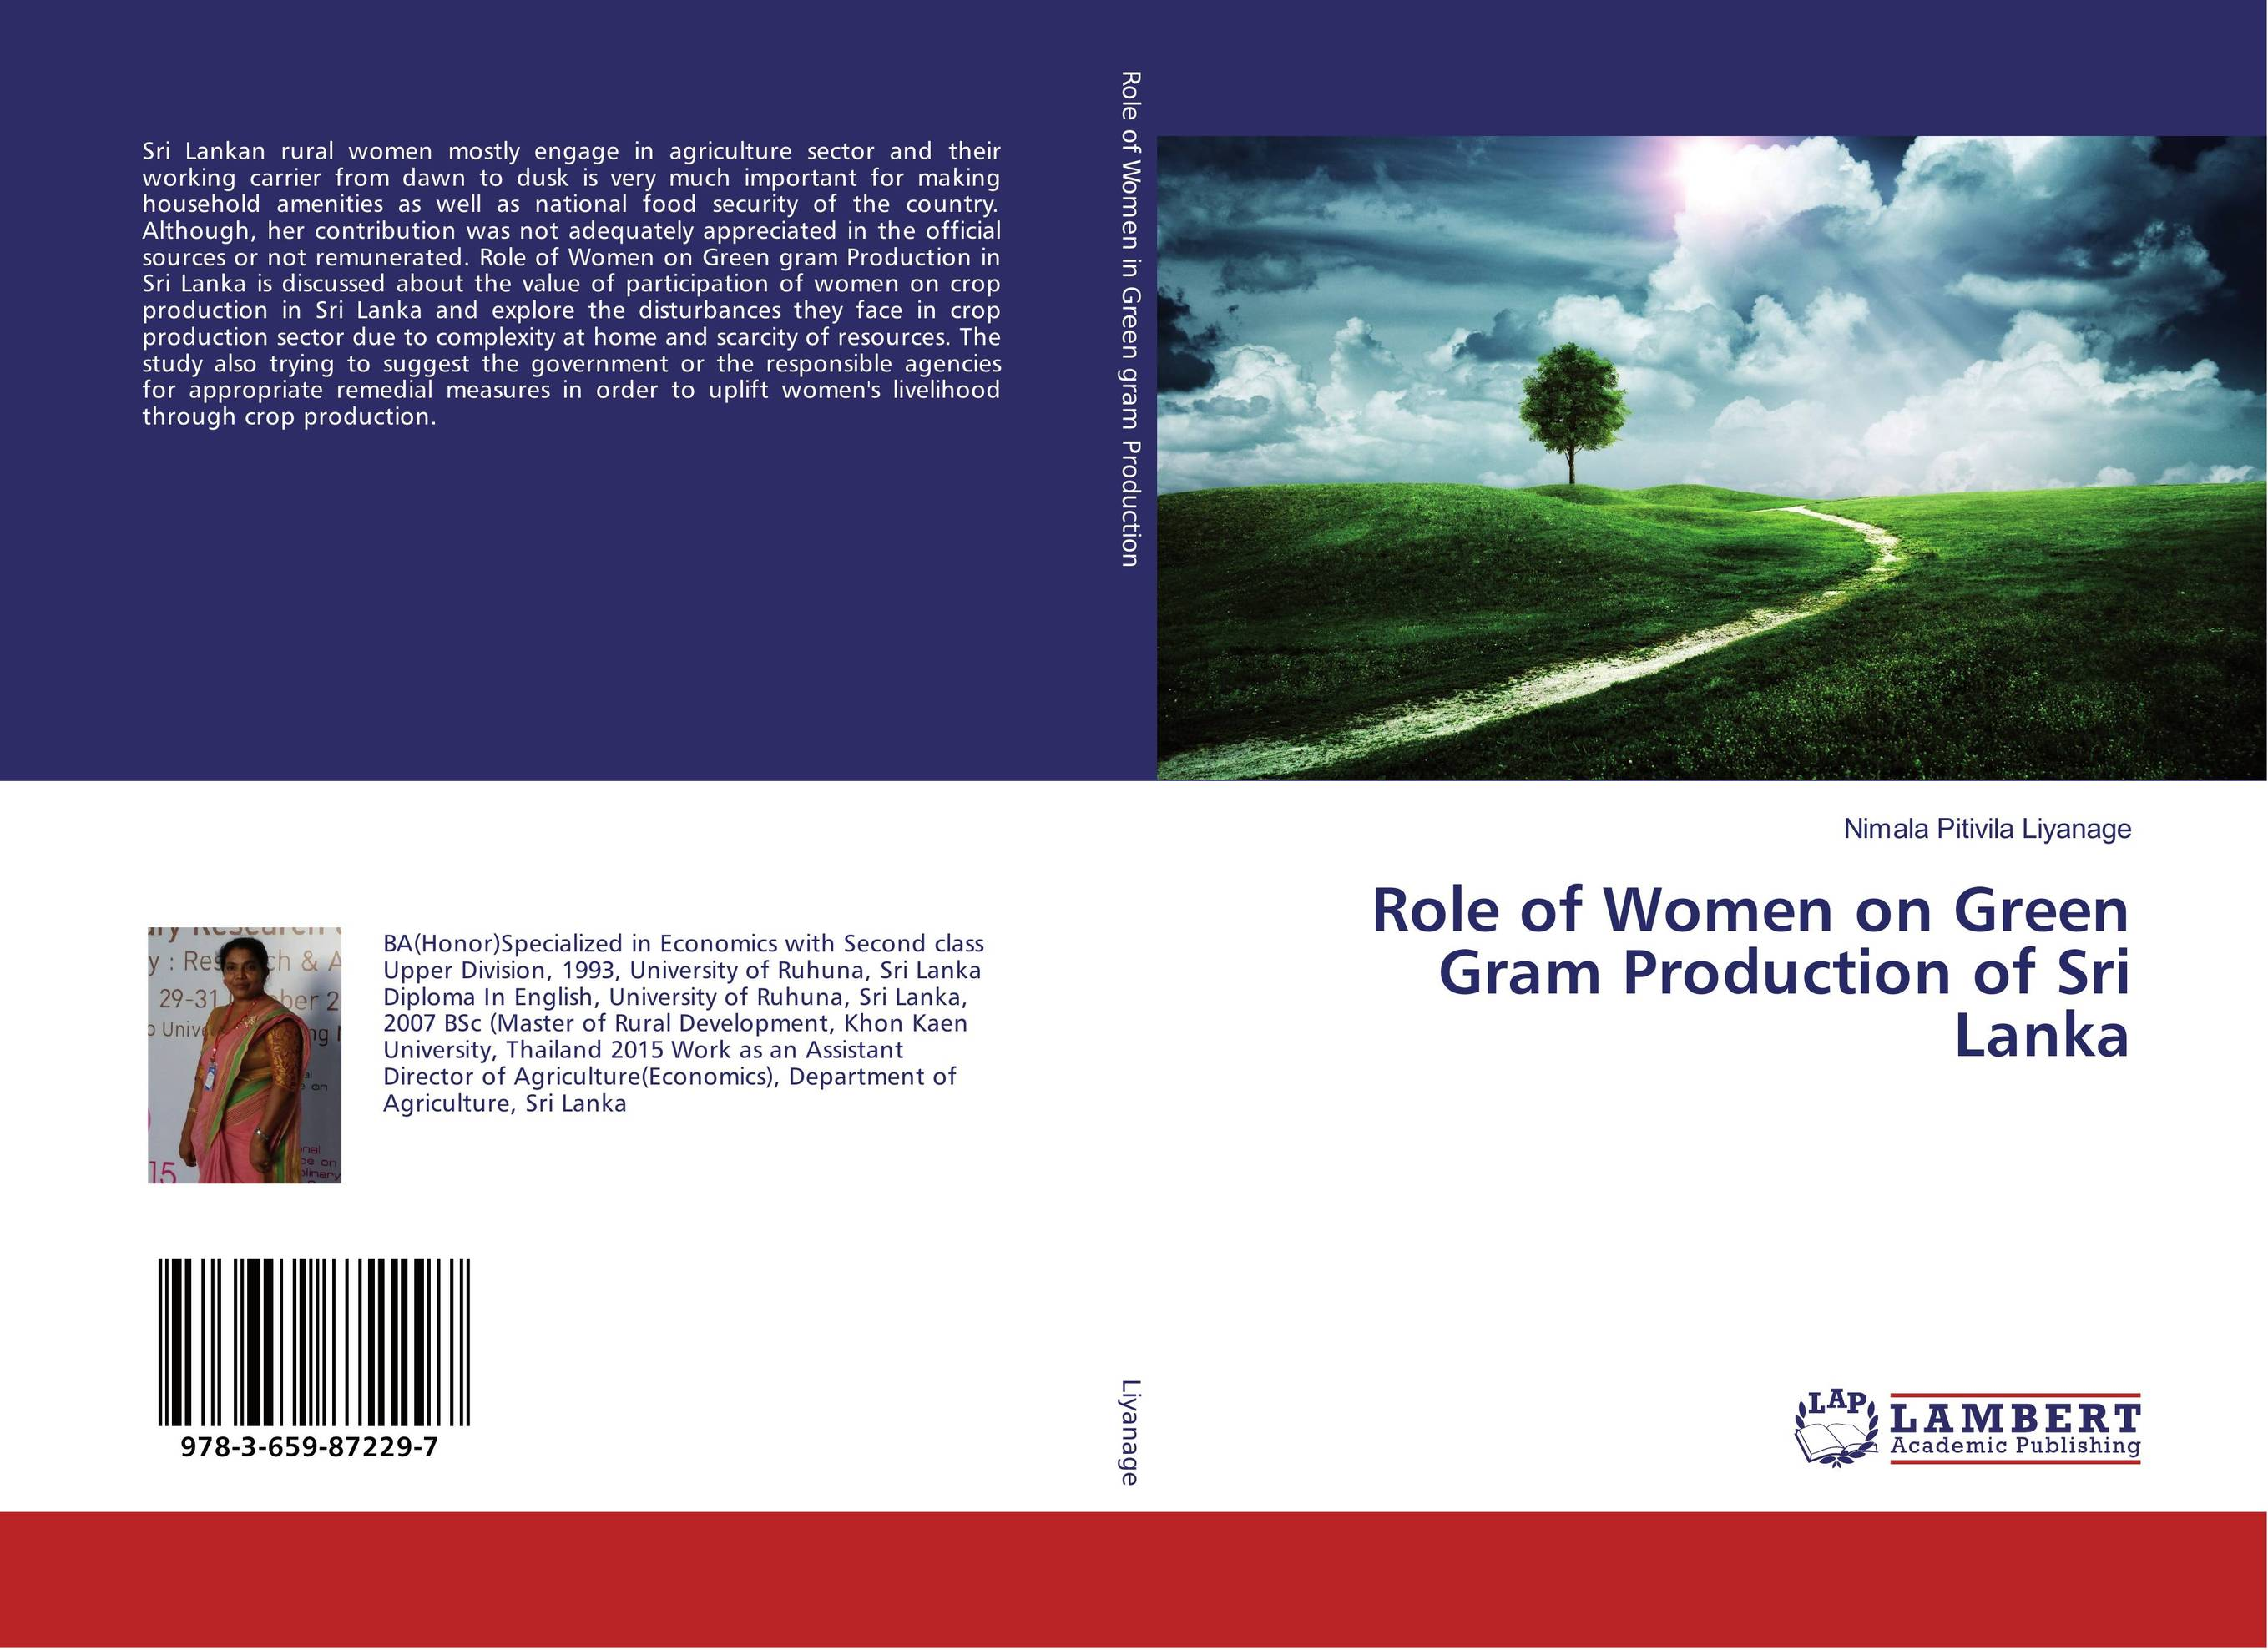 Role of Women on Green Gram Production of Sri Lanka opportunities for and constraints on crop production